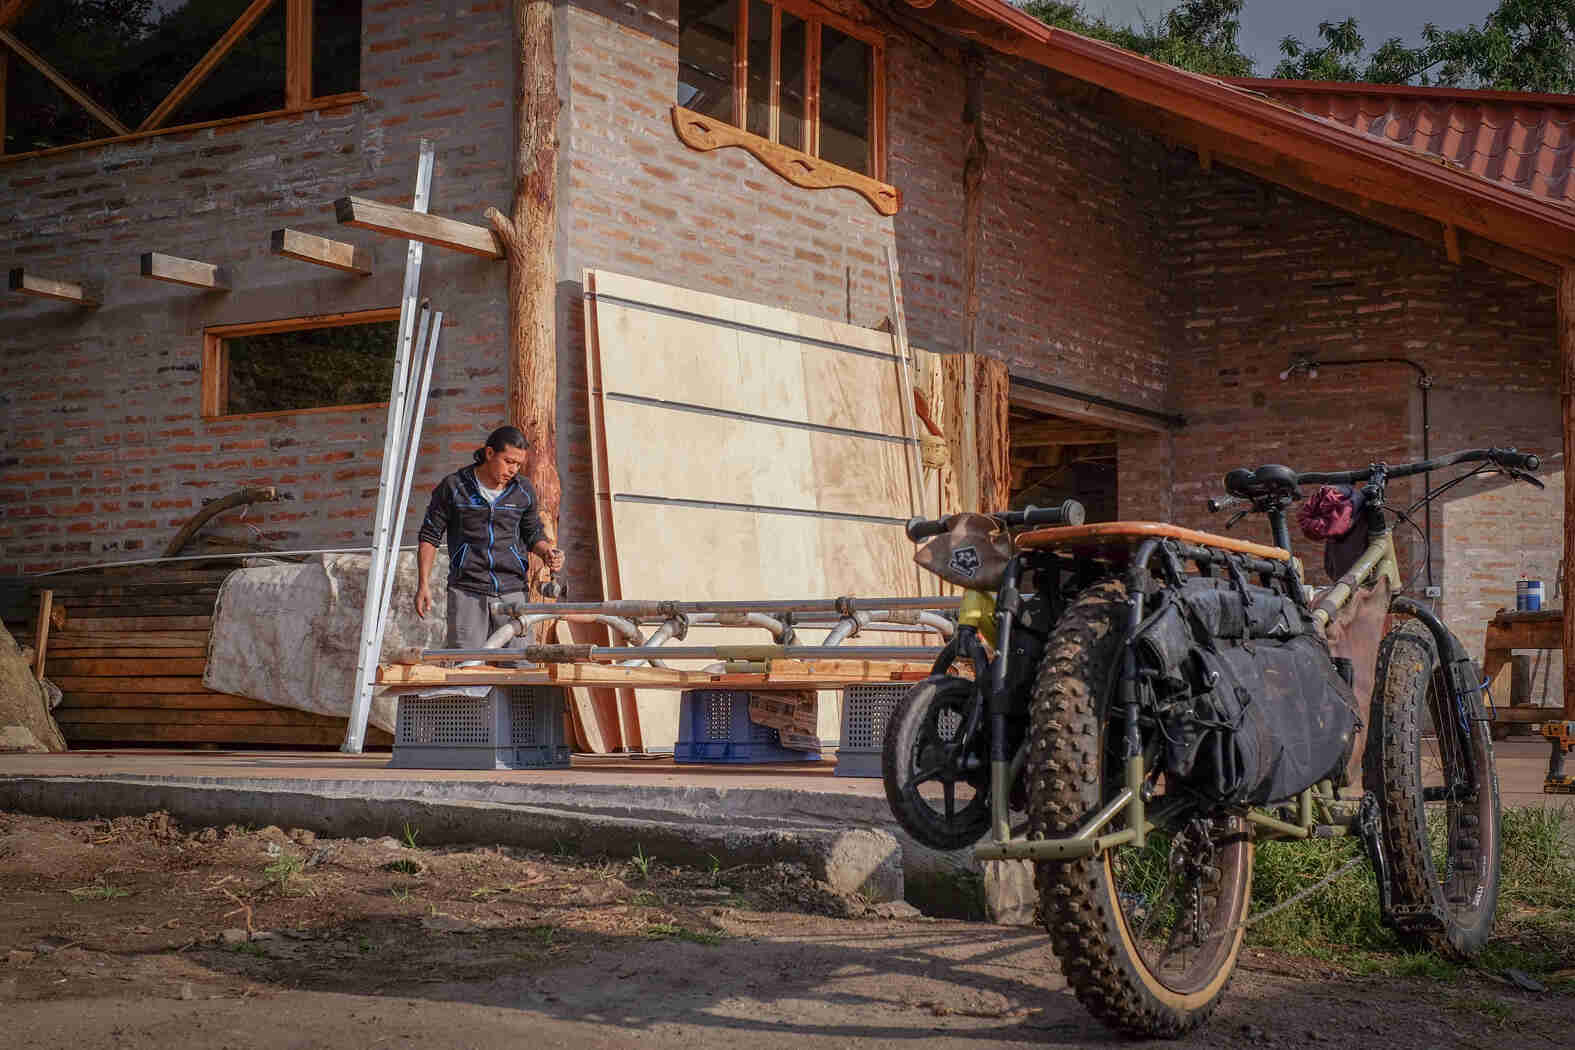 Rear ride side view of a Surly Big Fat Dummy bike, with a people building a structure in front of a brick house